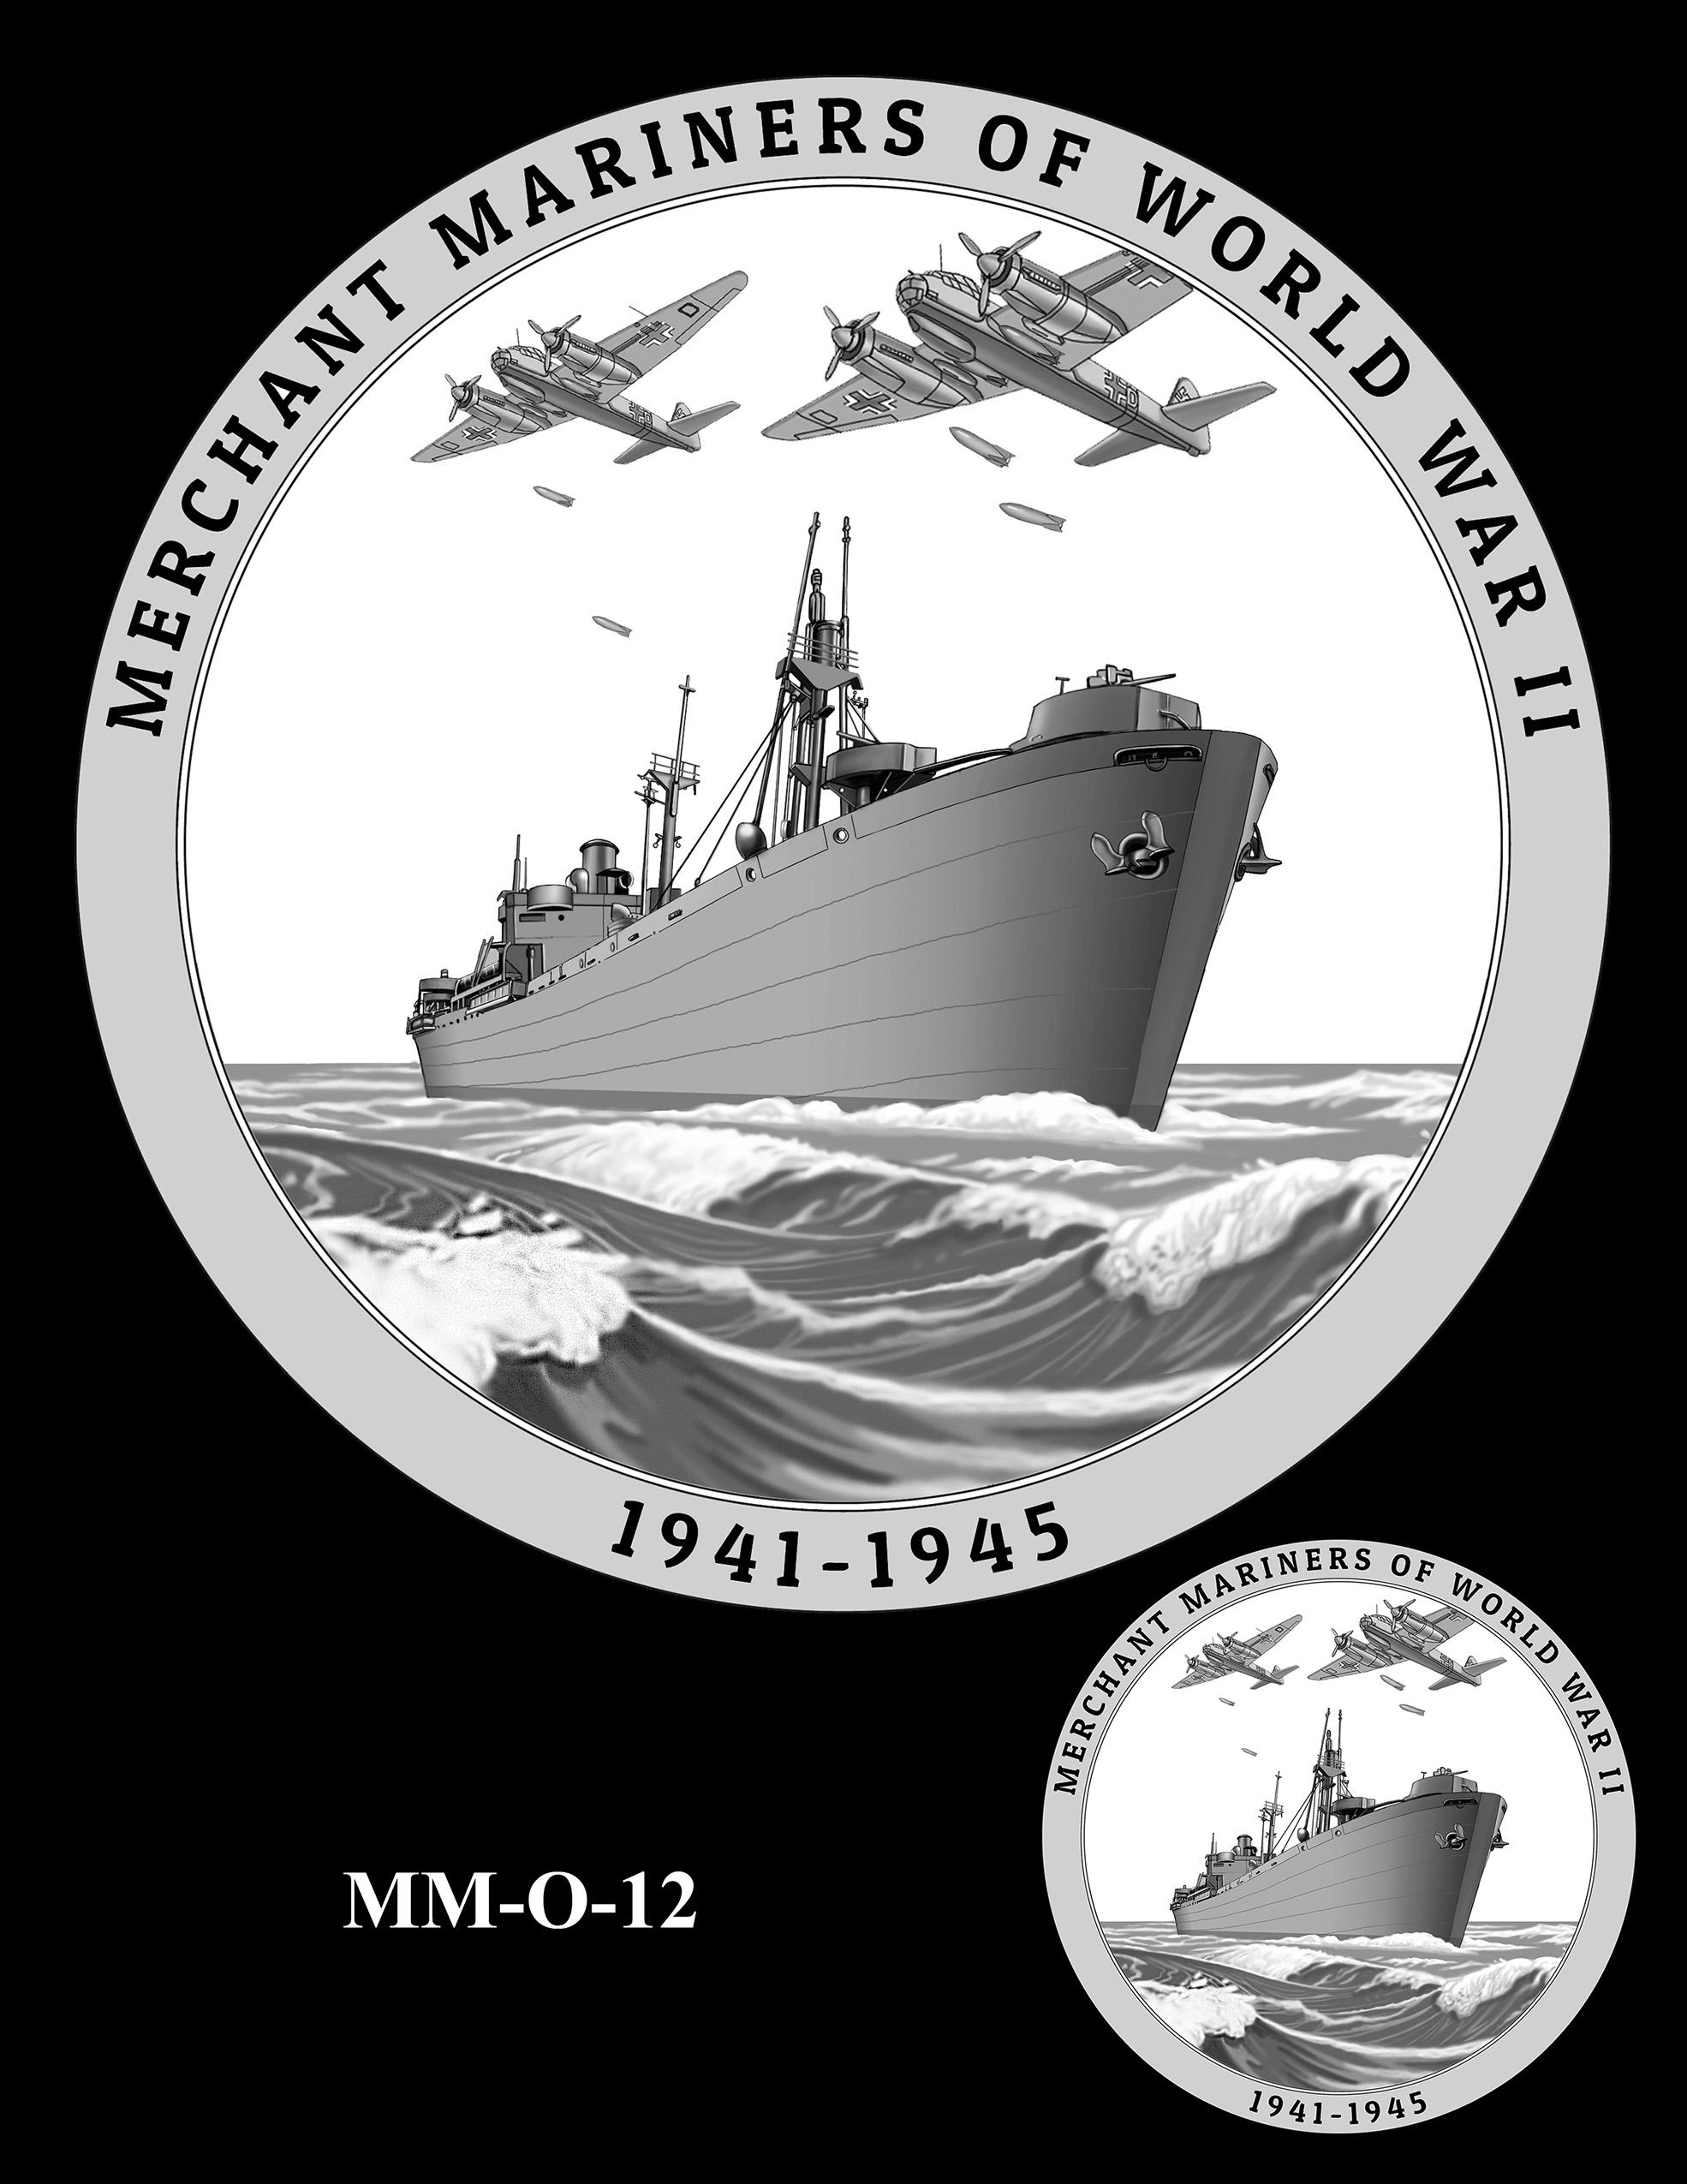 MM-O-12 -- Merchant Mariners of World War II Congressional Gold Medal